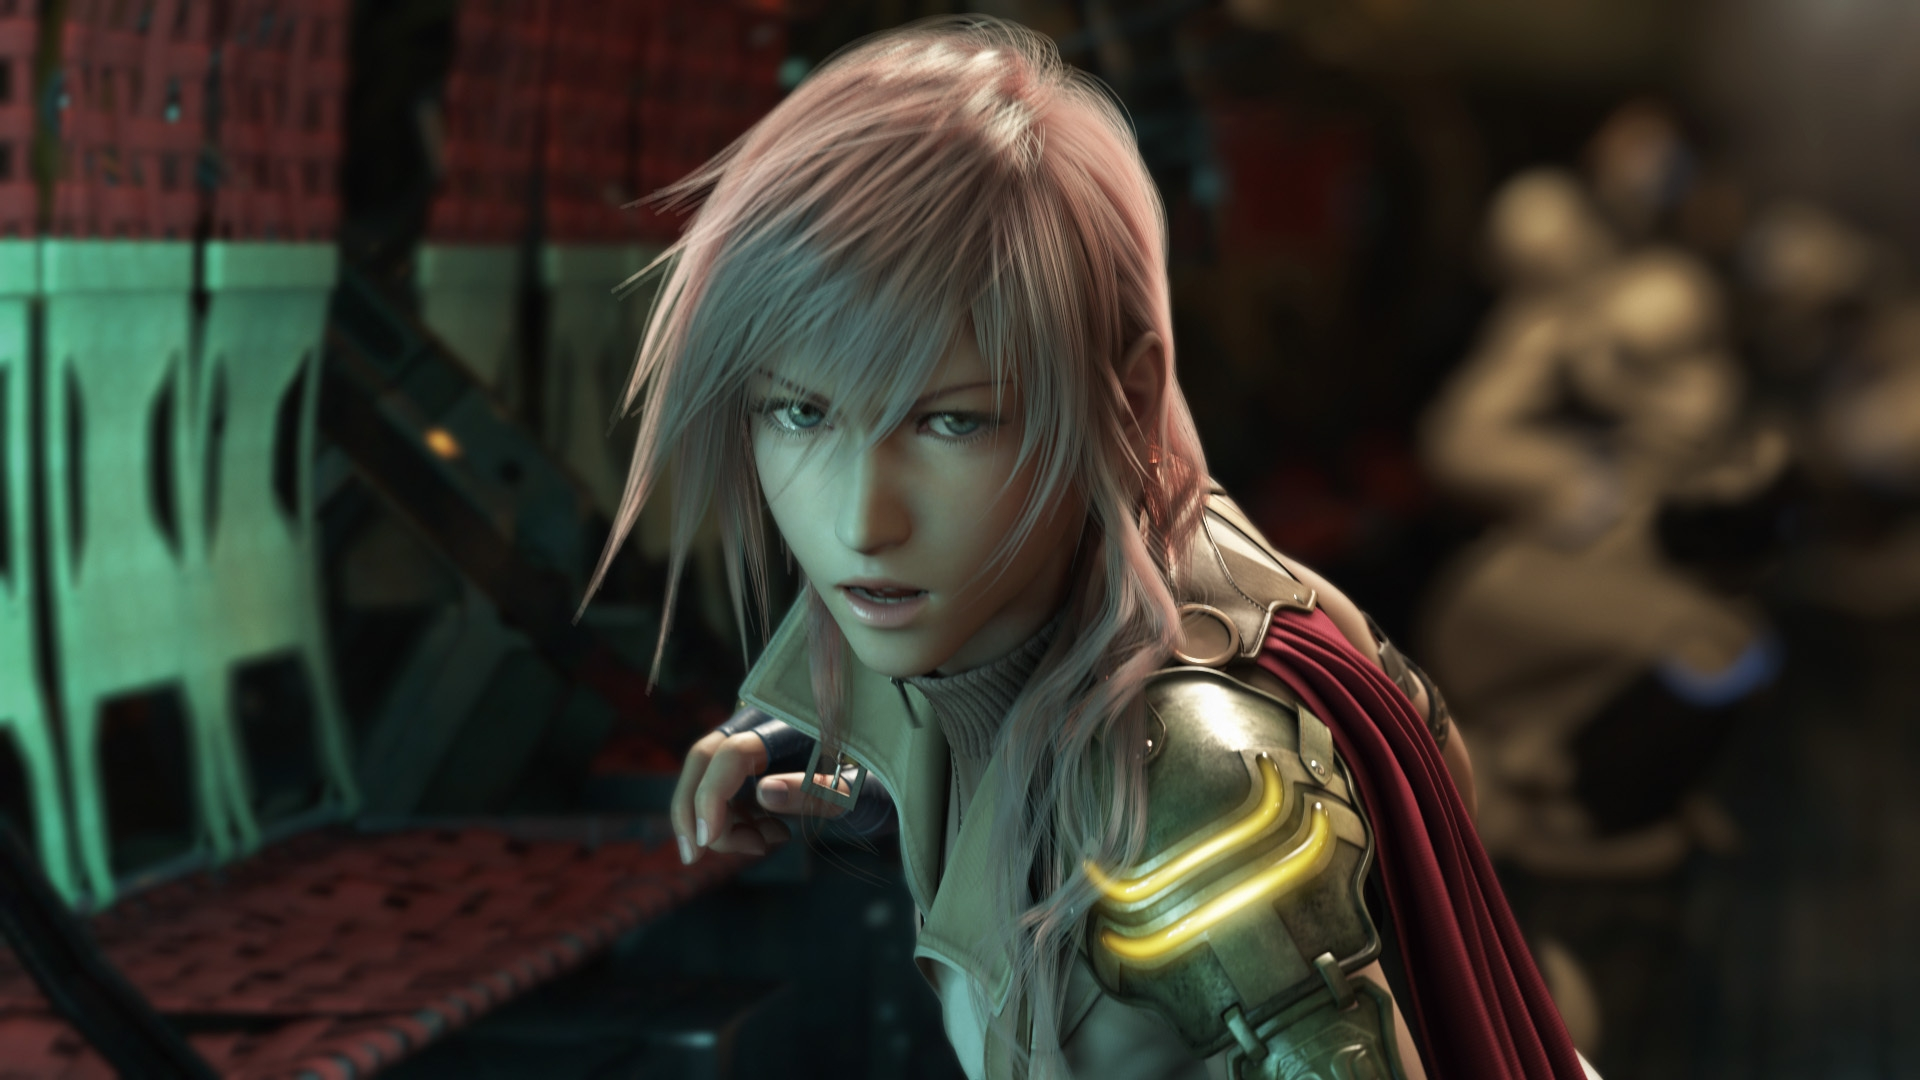 35469 download wallpaper Games, Final Fantasy screensavers and pictures for free